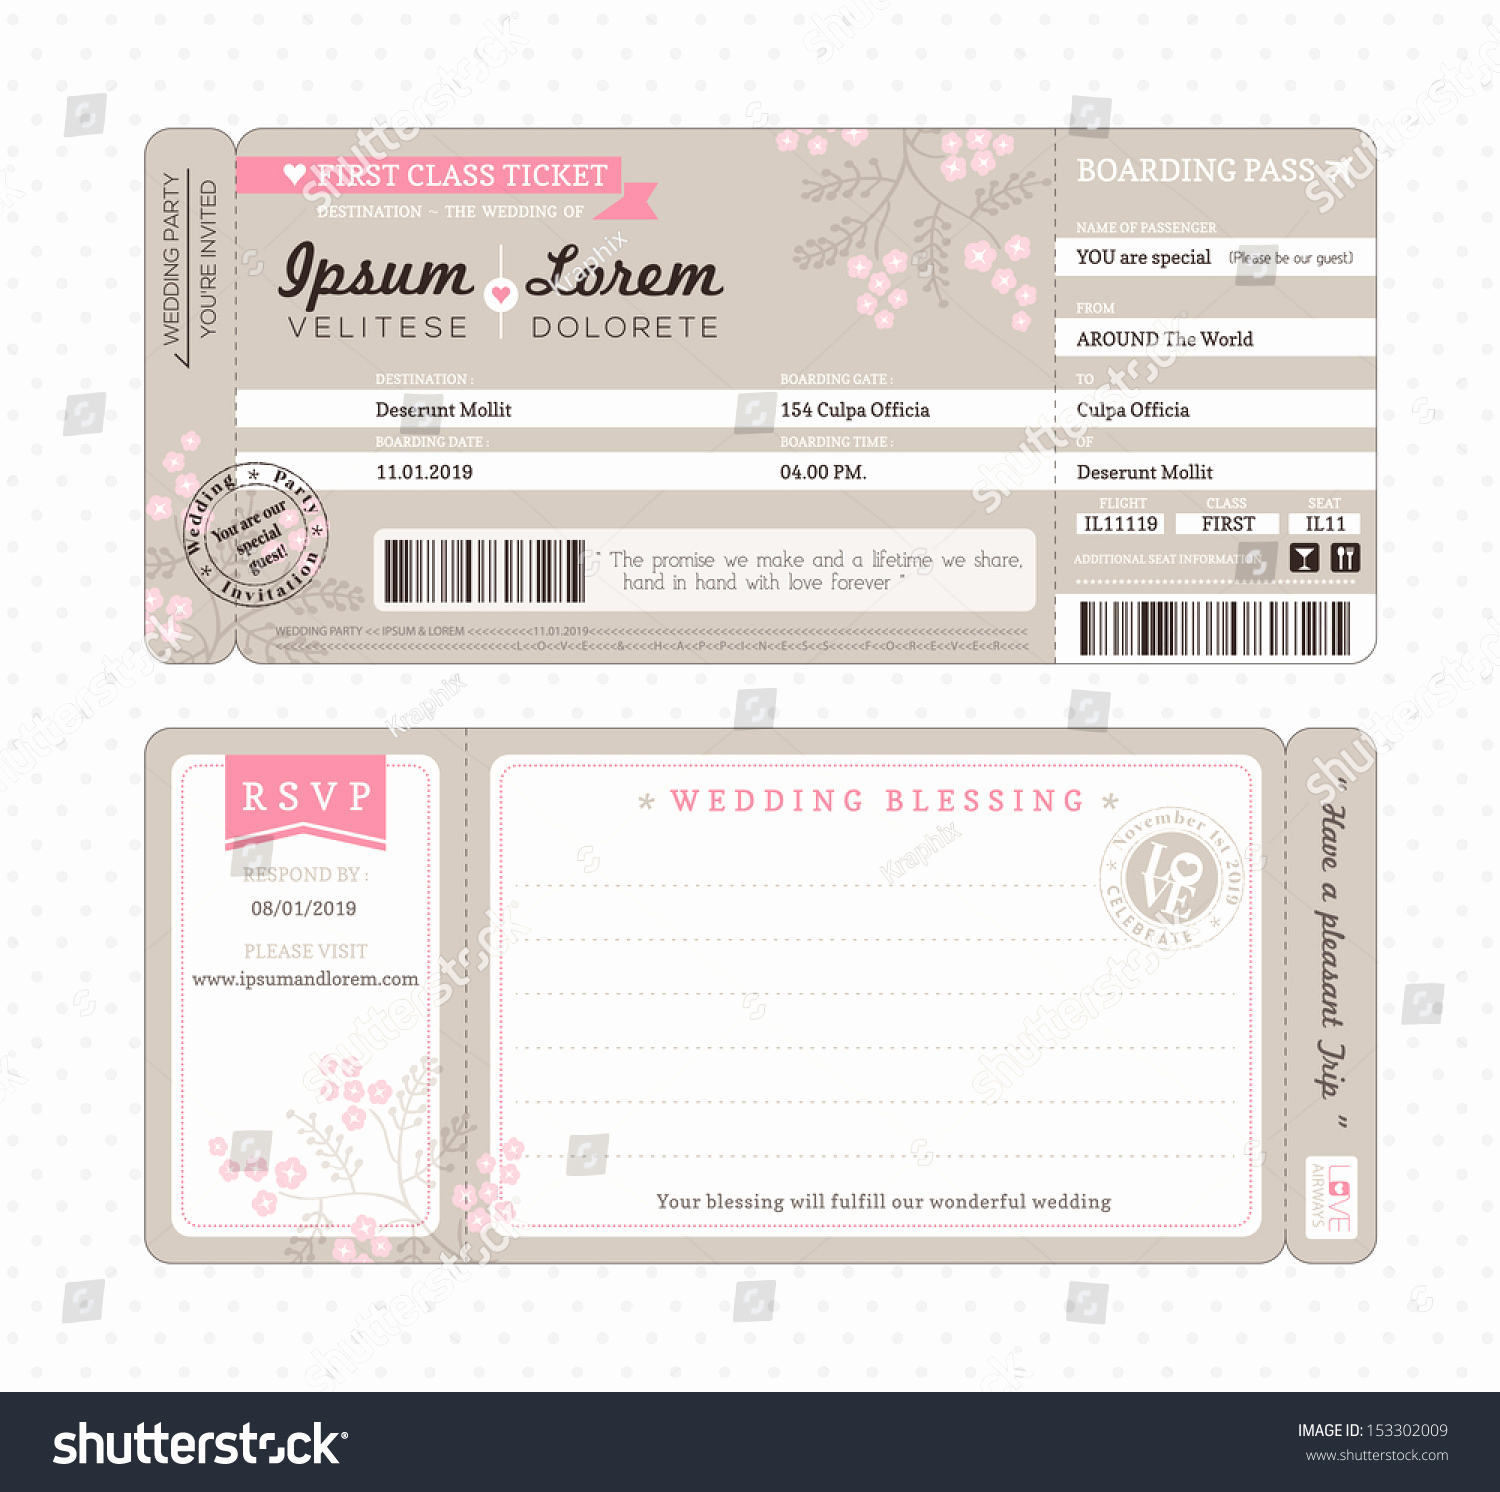 Boarding Pass Invitation Template Elegant Boarding Pass Ticket Wedding Invitation Template Stock